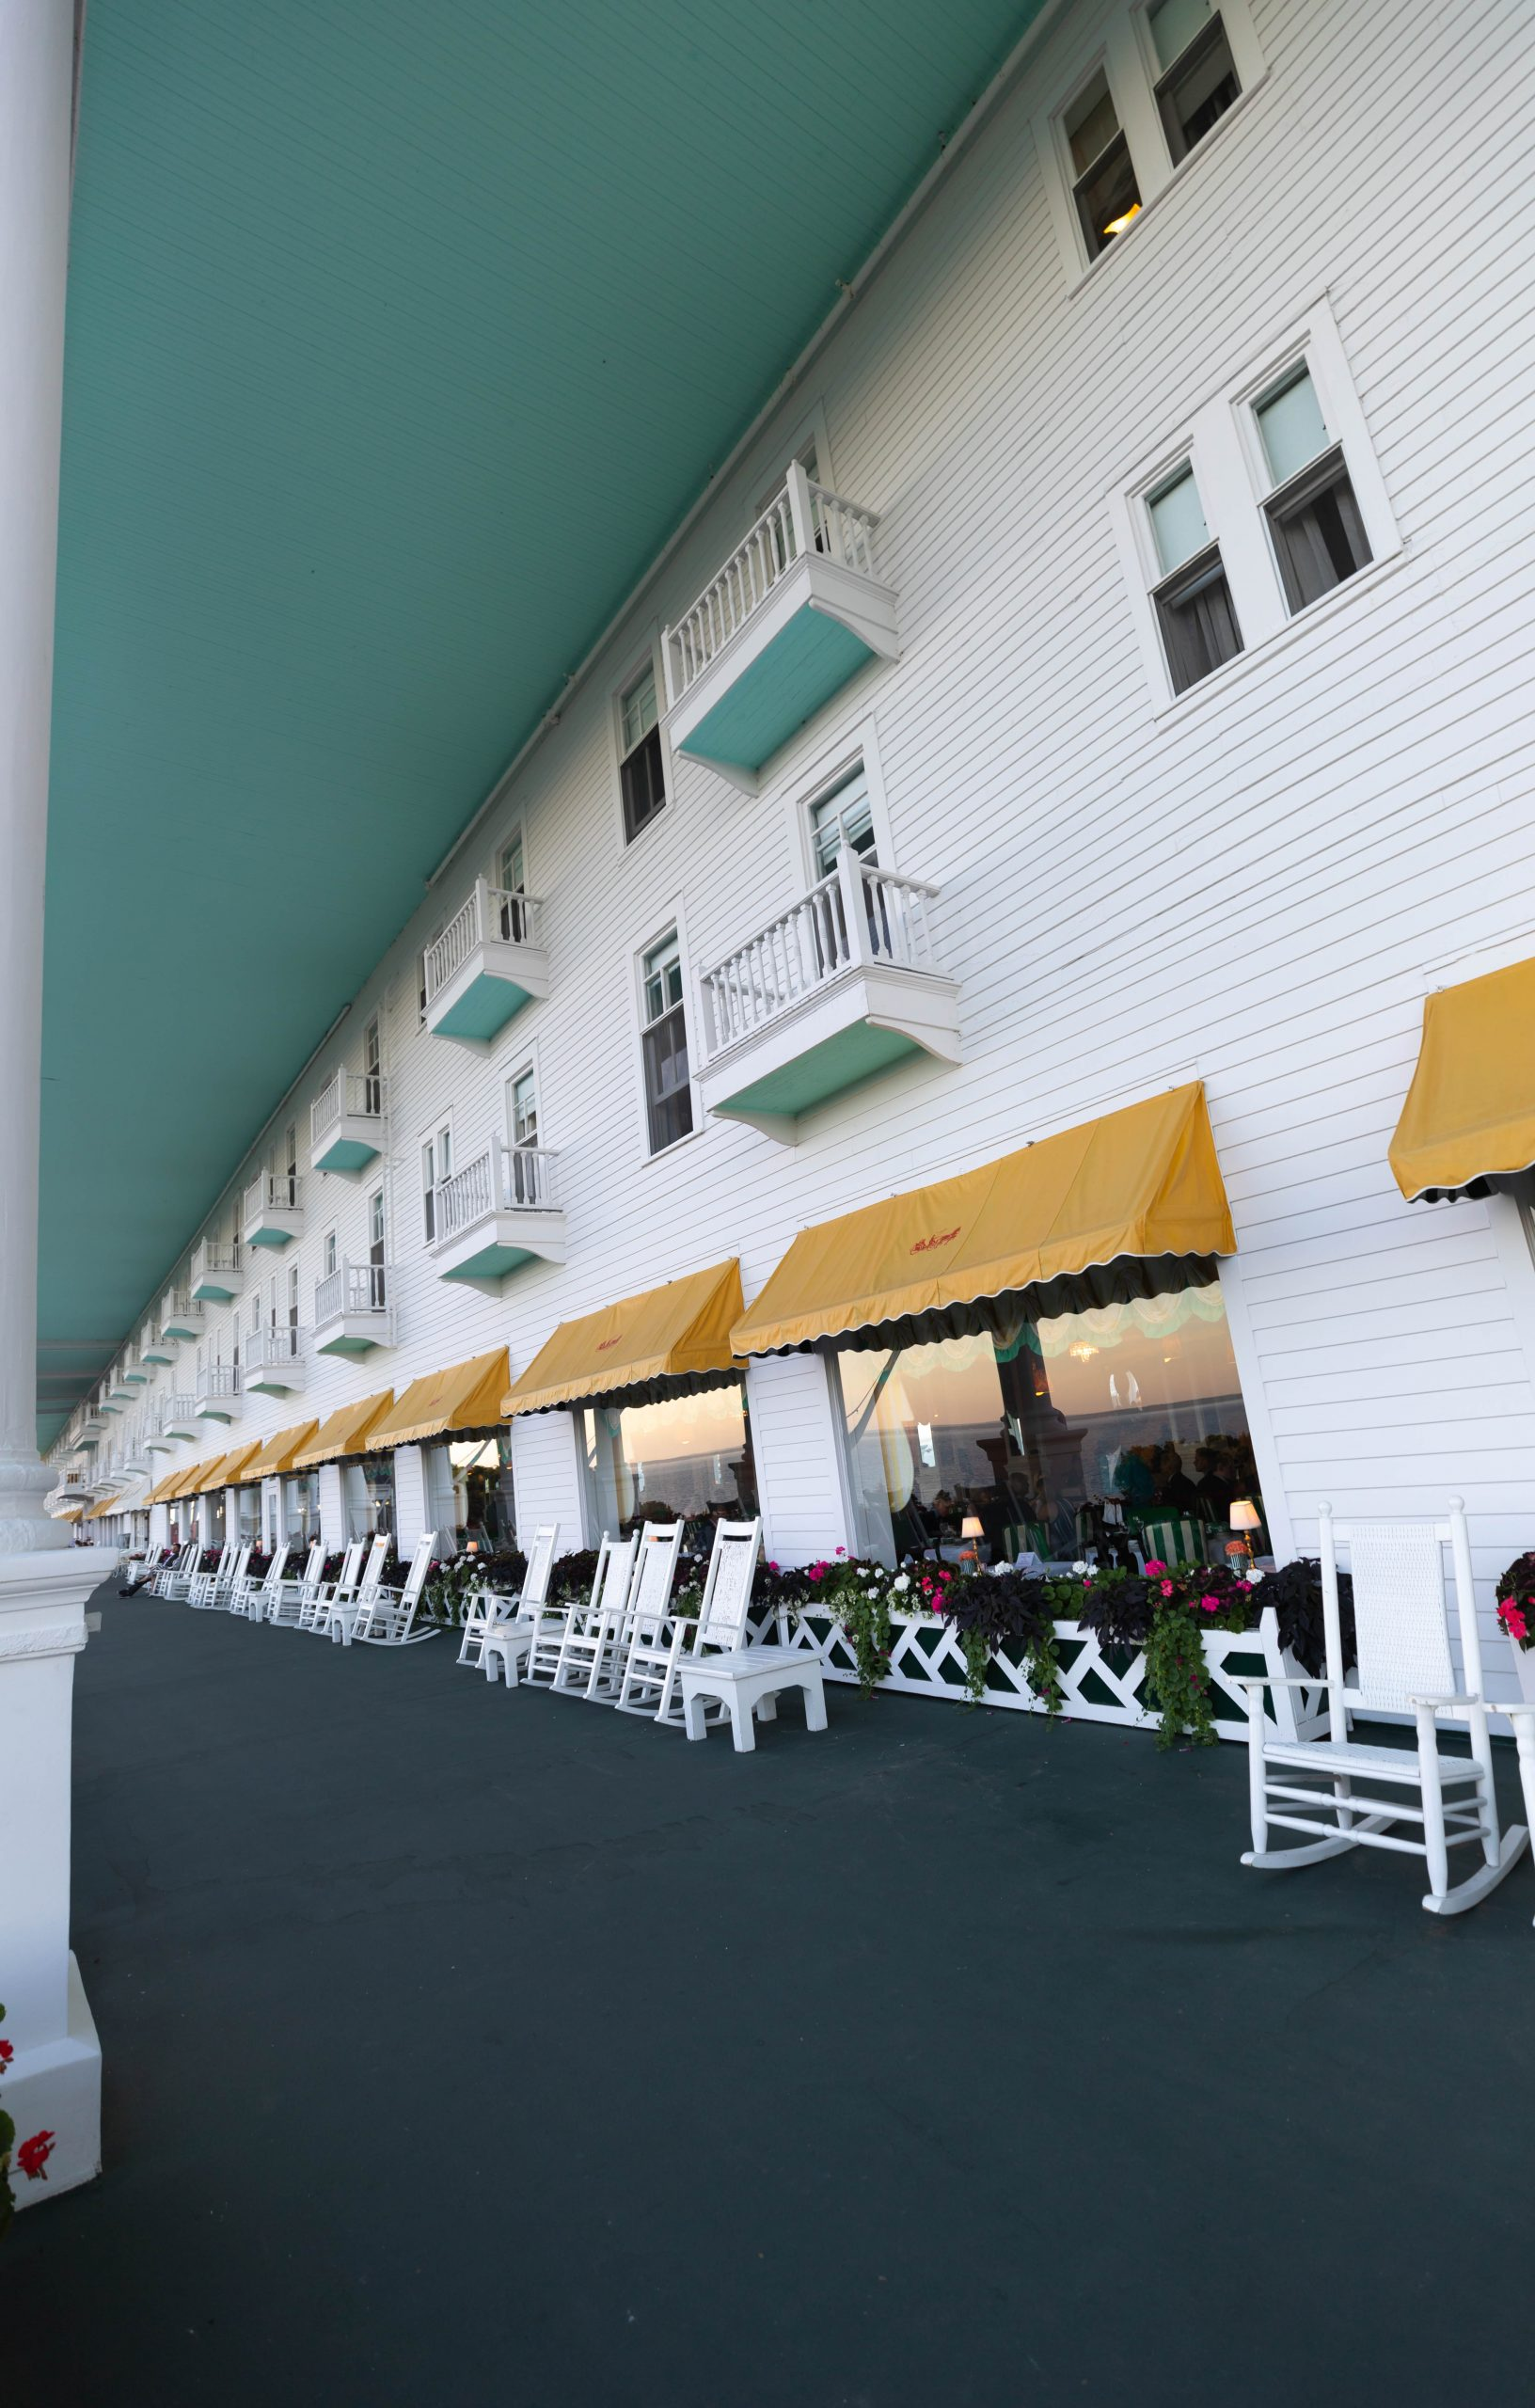 World's Longest Porch at Luxury Hotels of the World Grand Hotel on Mackinac Island in Northern Michigan Written and Photographed by Annie Fairfax